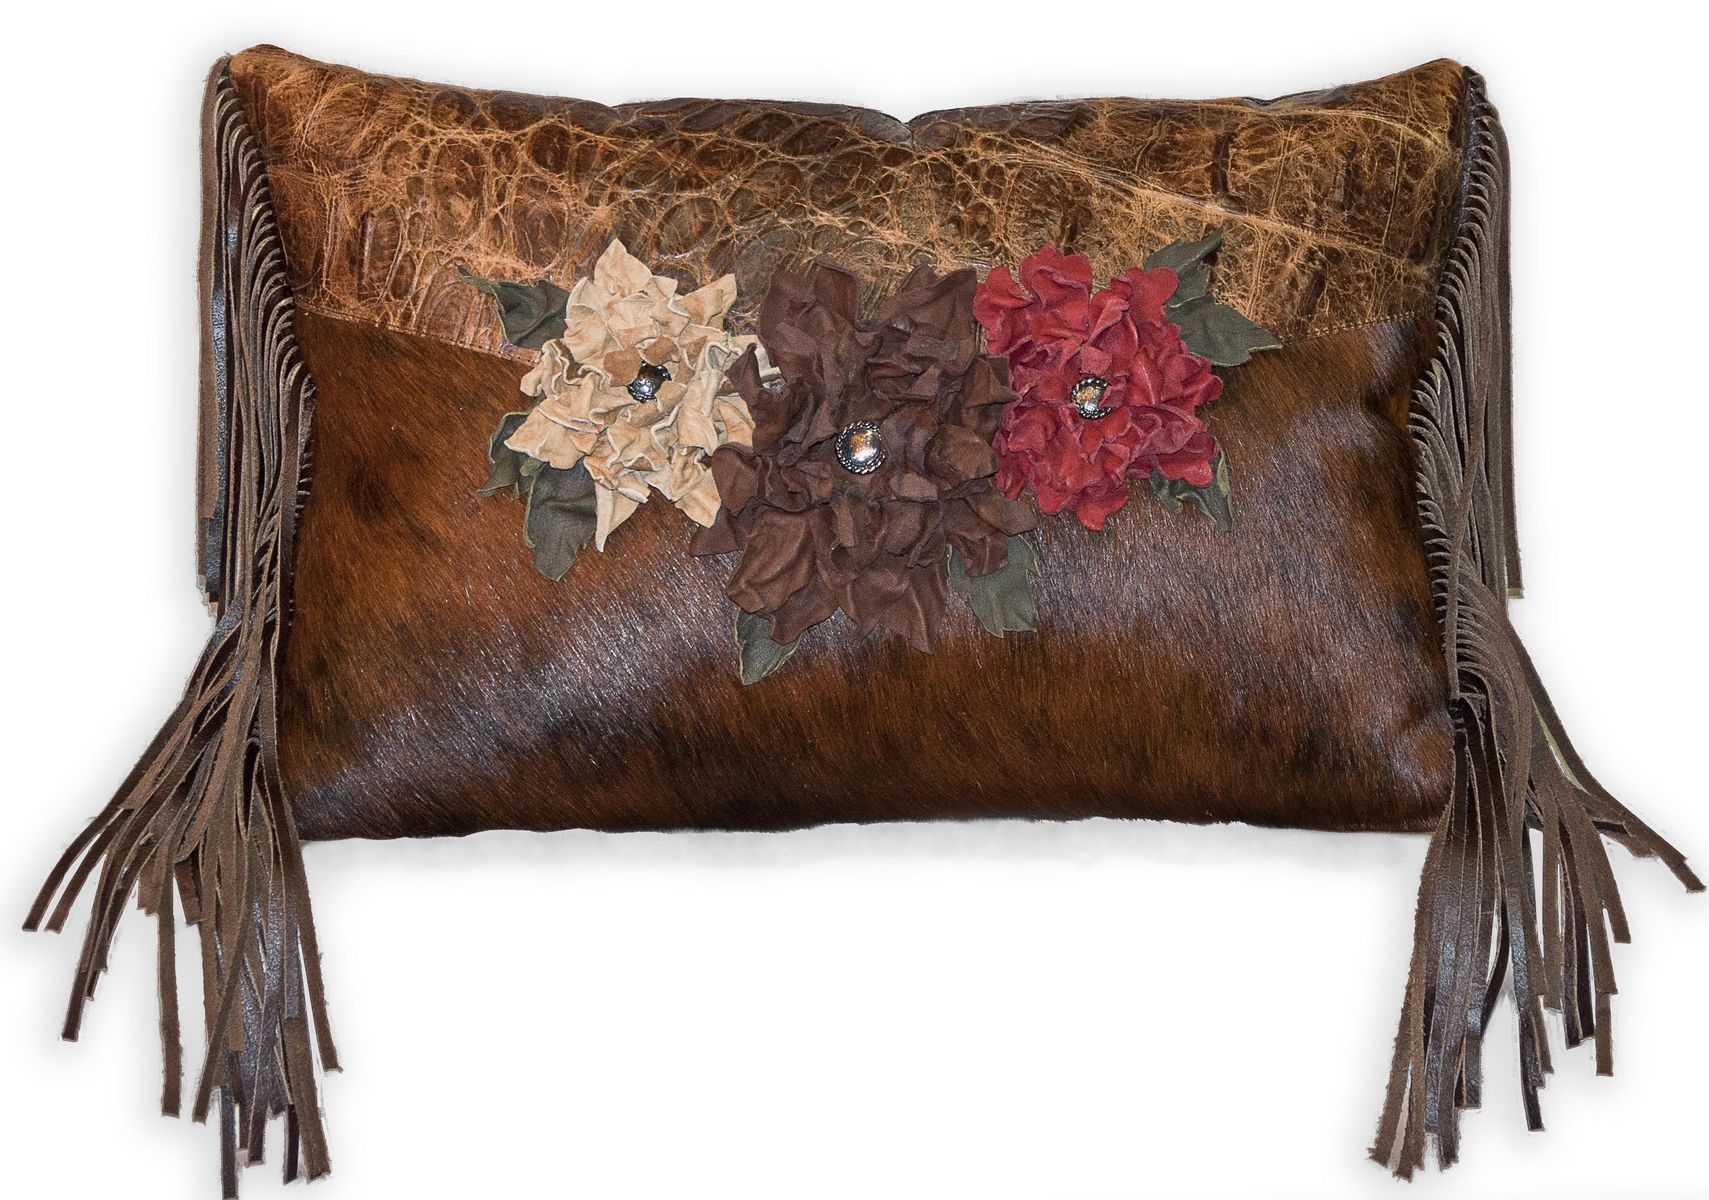 Hand Made Cowhide Pillow With Handmade Leather Flowers By